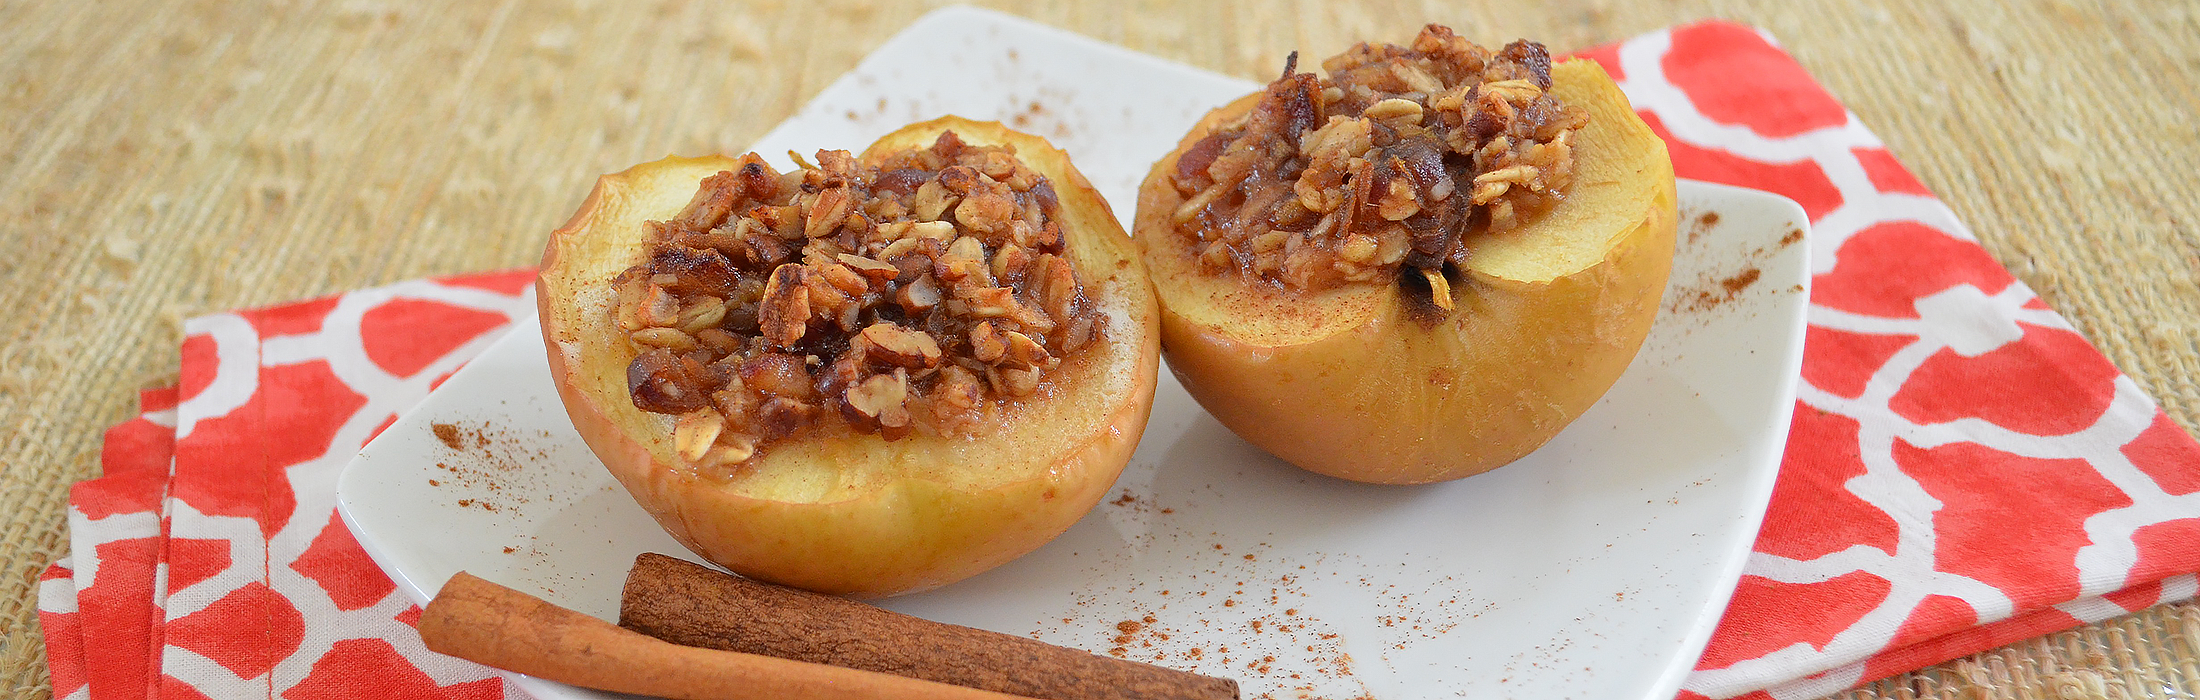 Sweet and Tart Baked Apples